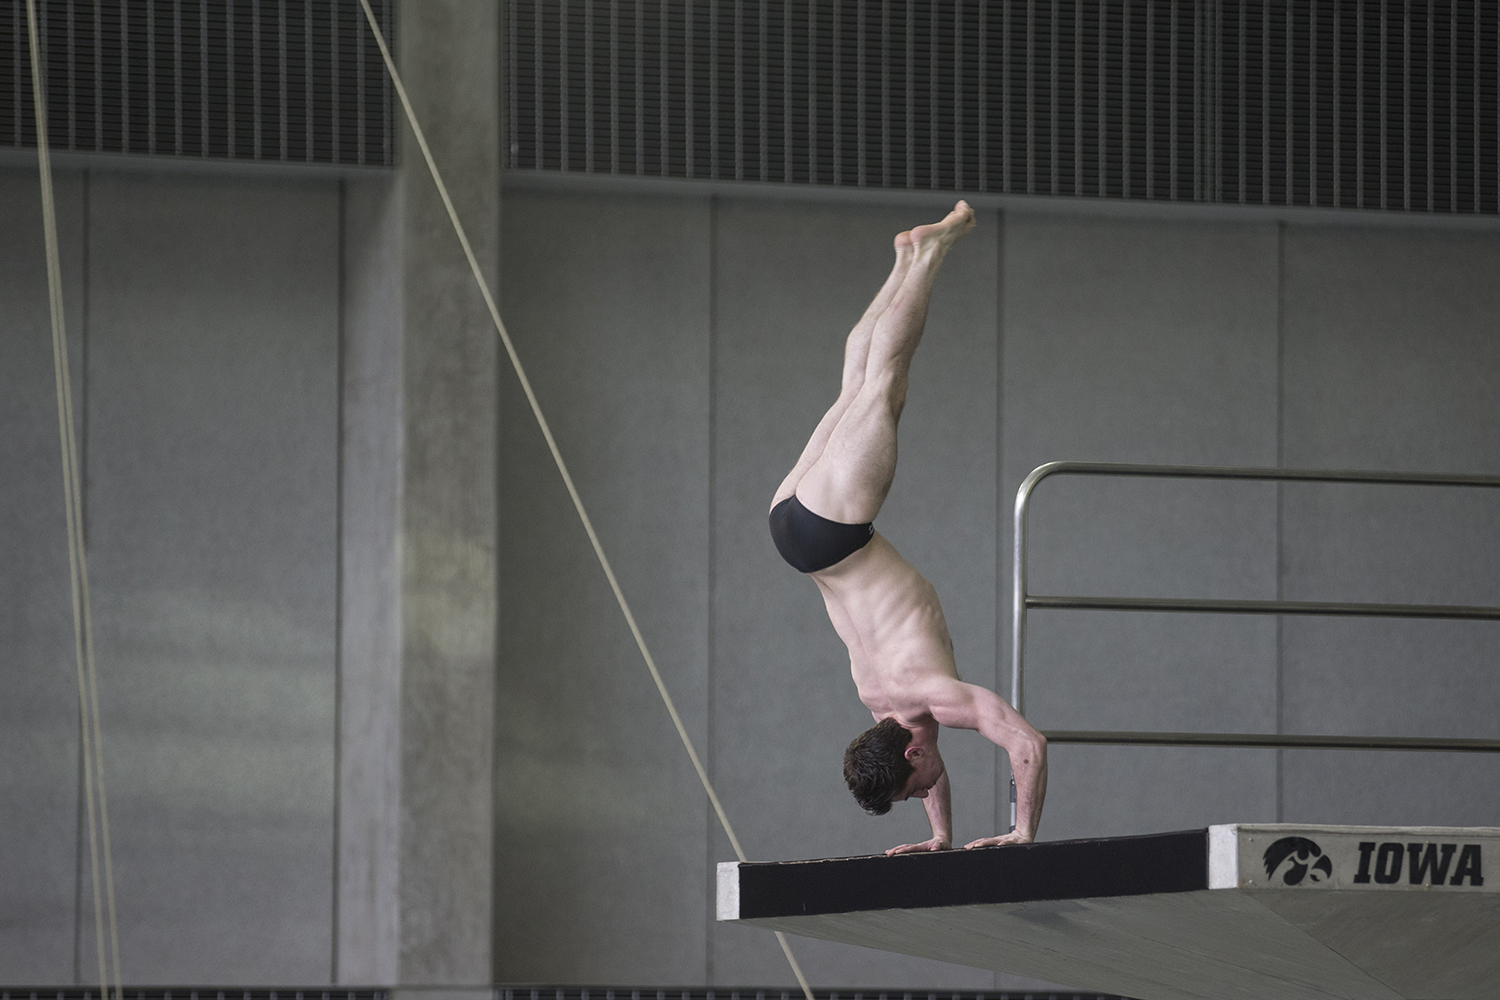 Indiana%27s+Mory+Gould+sets+up+for+a+handstand+dive%2C+which+earned+him+a+score+of+43.2+during+preliminary+rounds+of+the+men%27s+Big+10+Swimming+Championships+on+Saturday%2C+March+3%2C+2019.